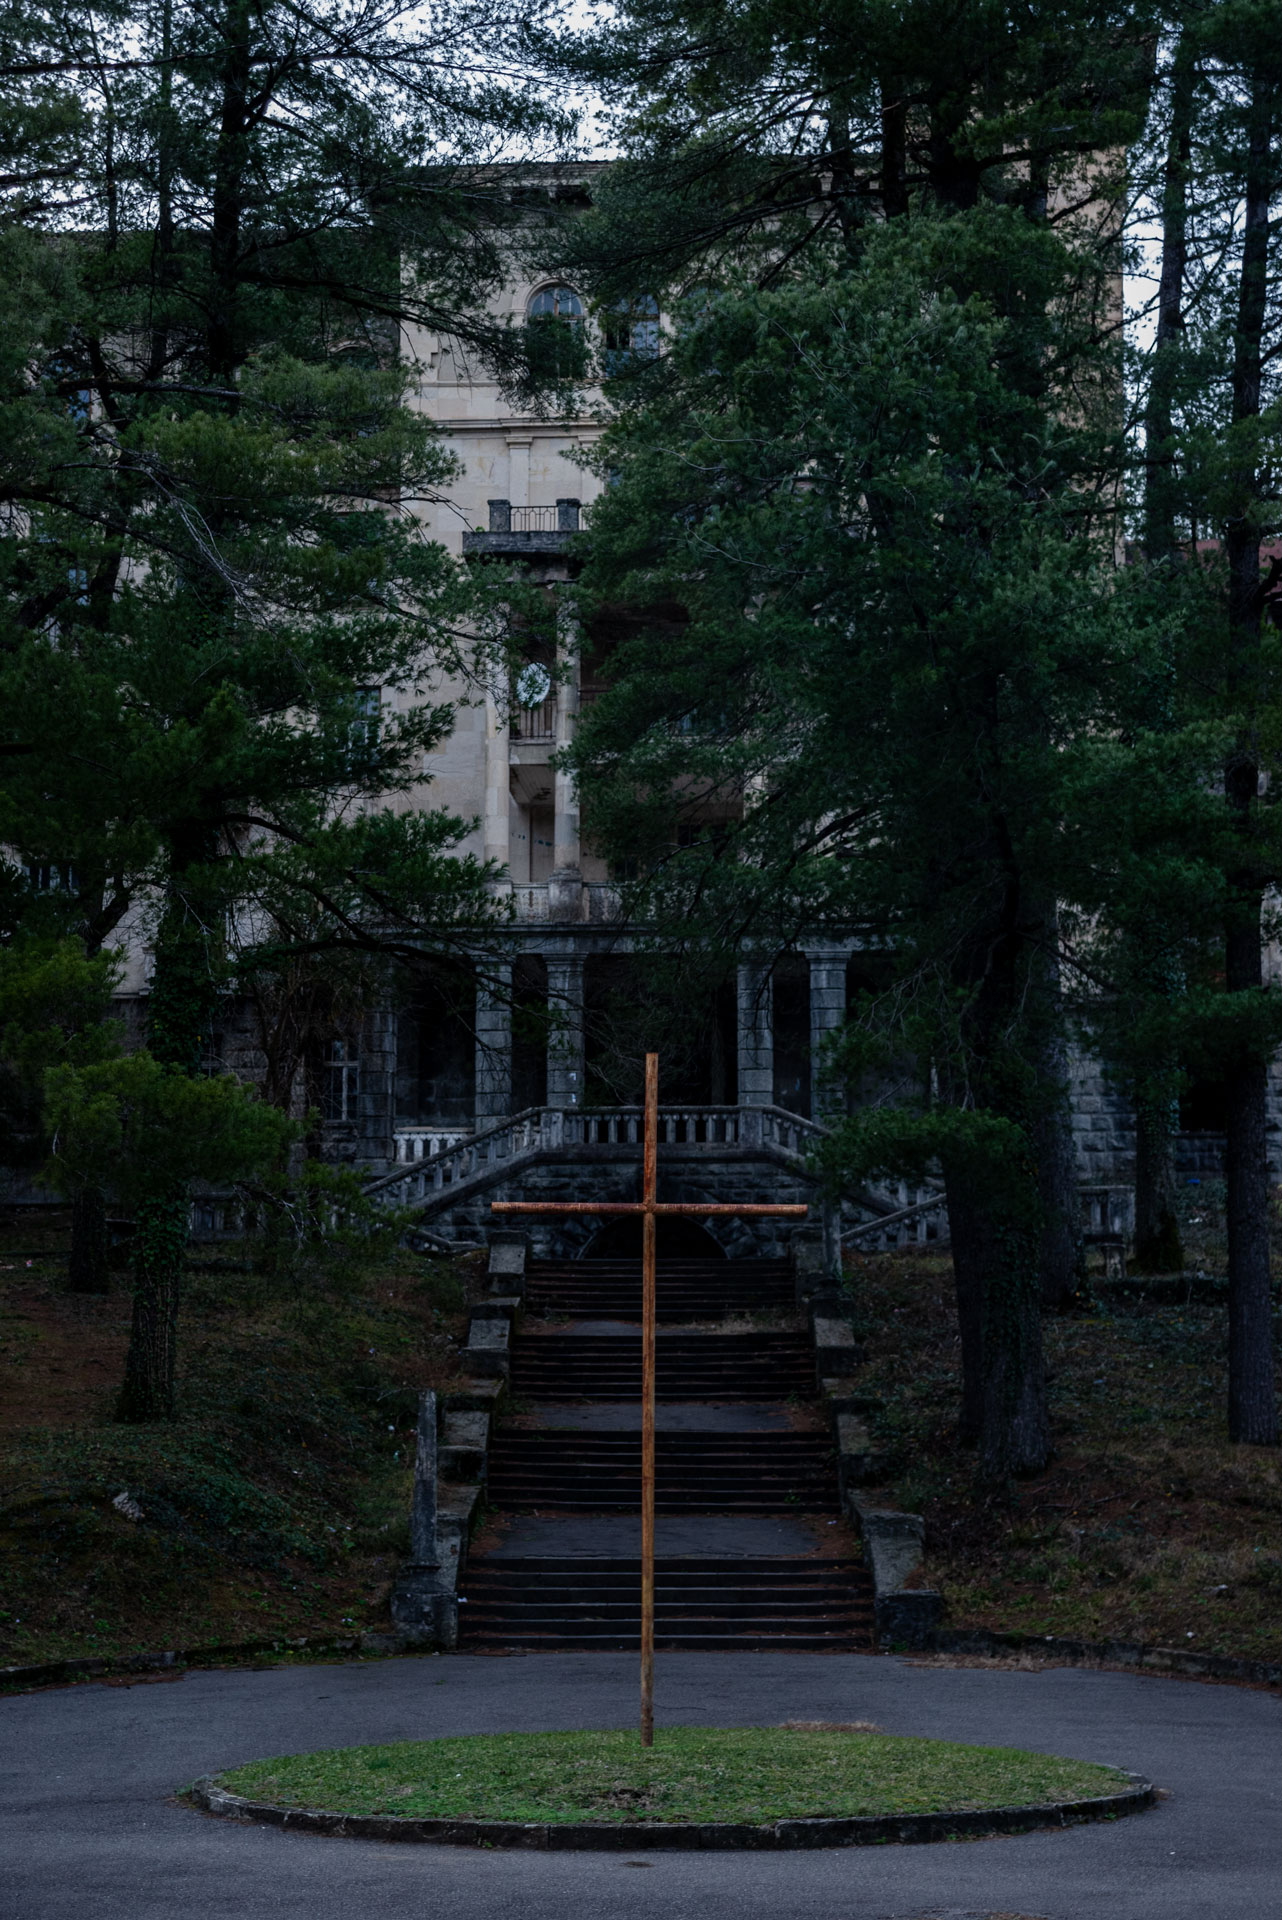 The entrance to one of the biggest sanatoriums in Tskaltubo. People were living in its interior.